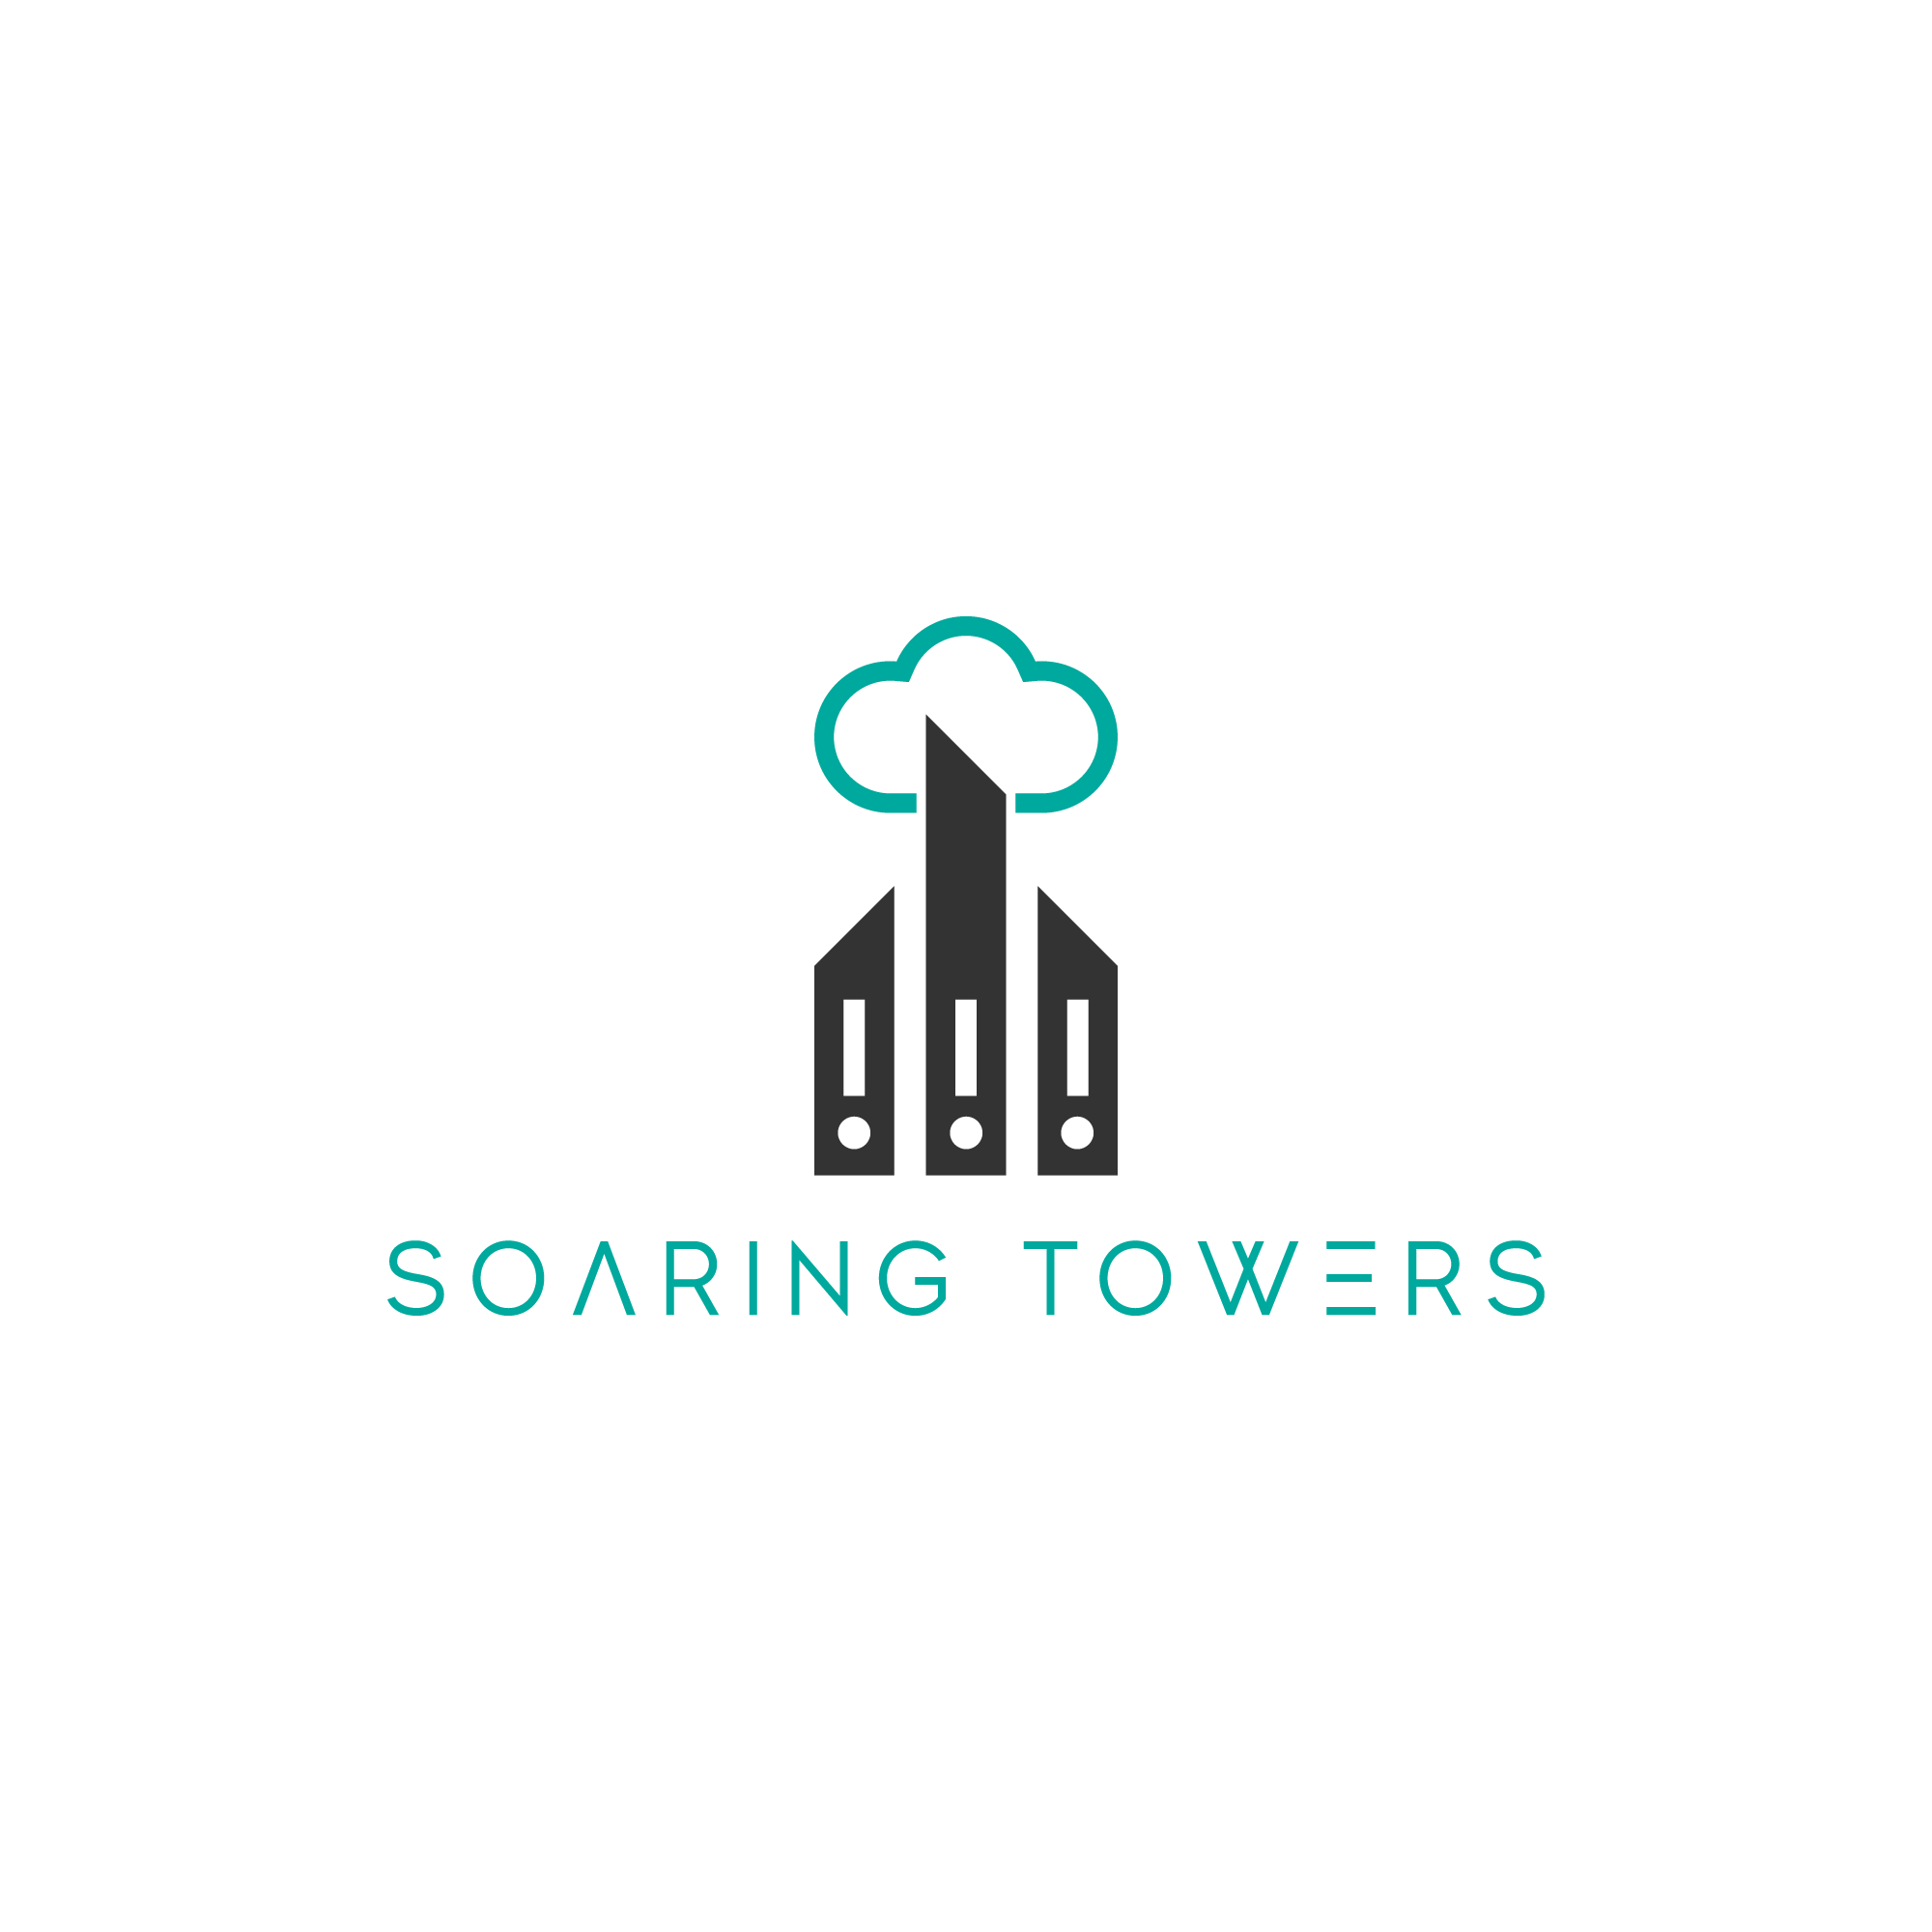 Soaring Towers